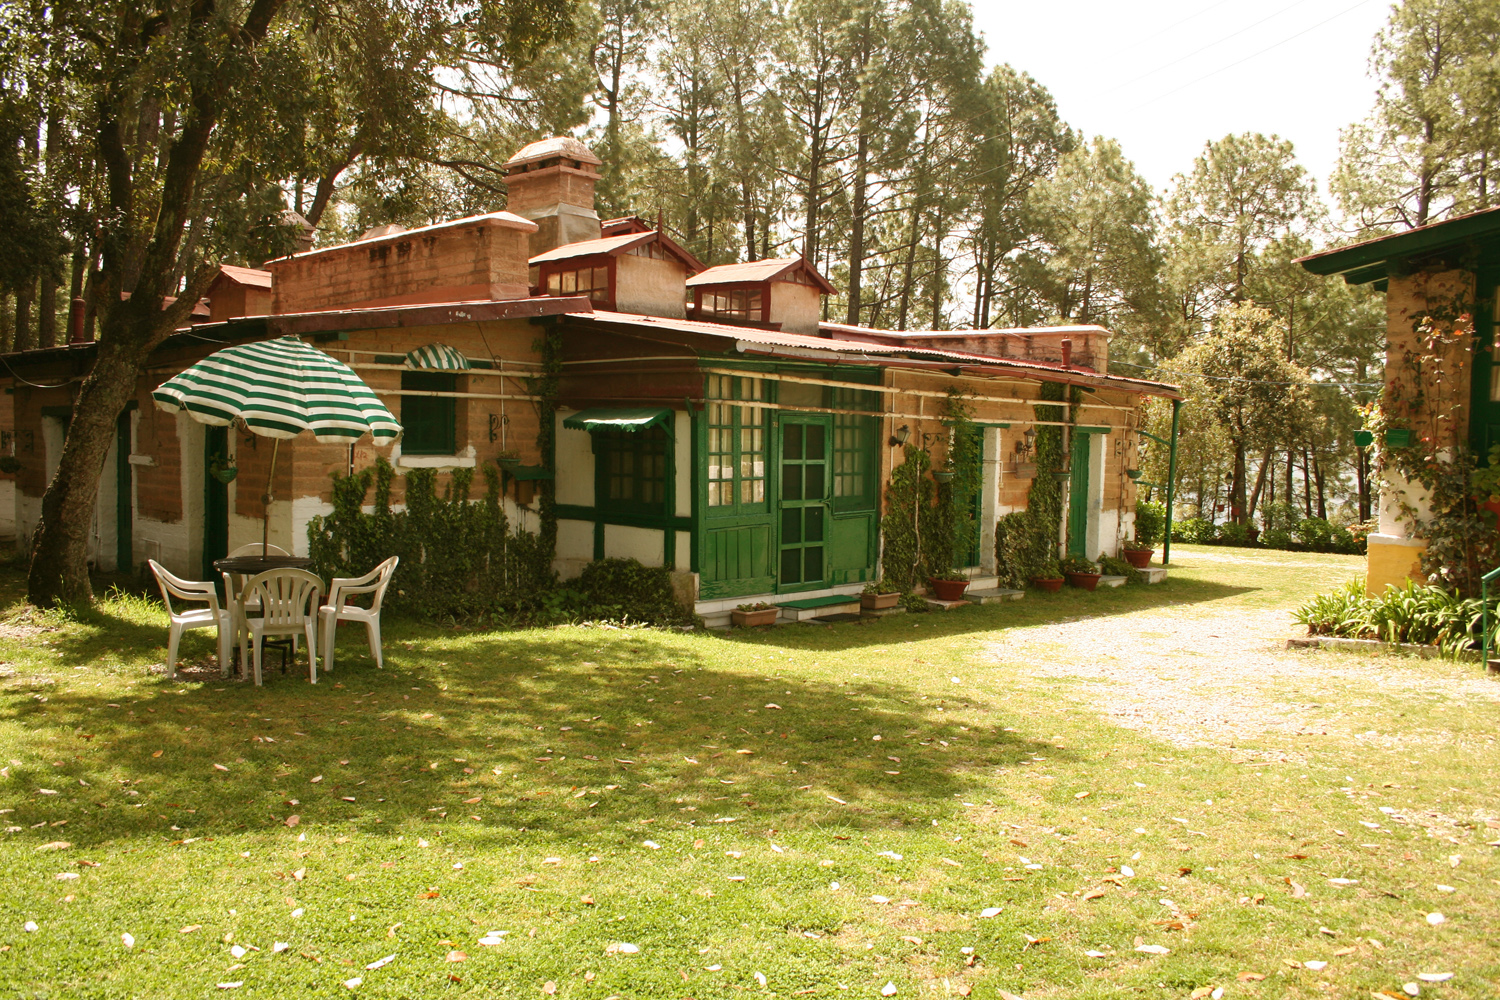 West View Hotel –Ranikhet Ranikhet Luxury Suite West View Hotel Ranikhet